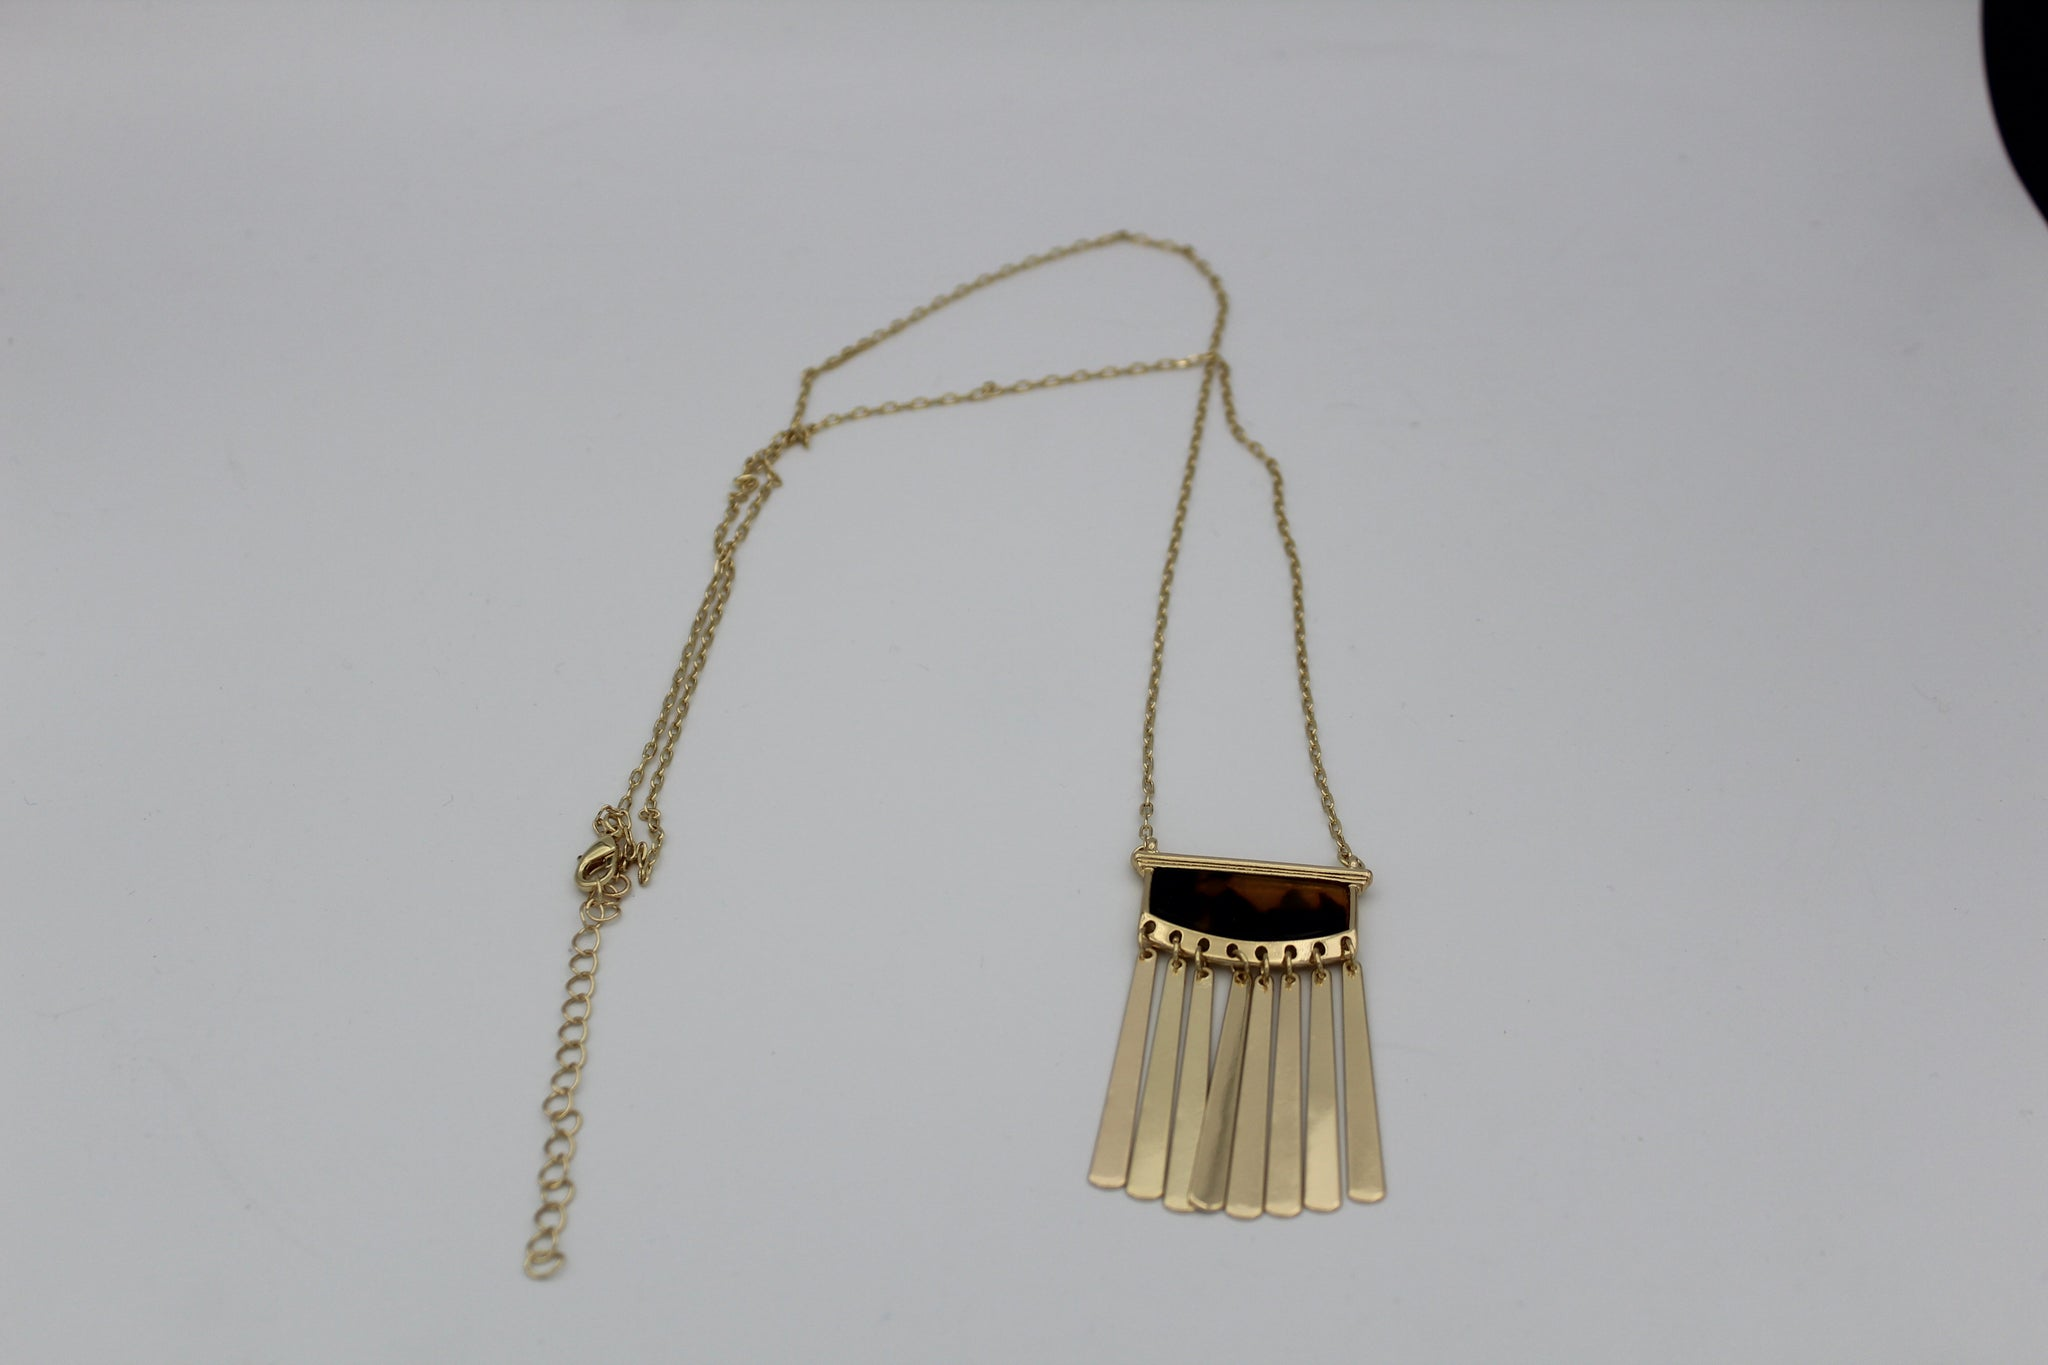 Stainless Steel Necklace Supplier